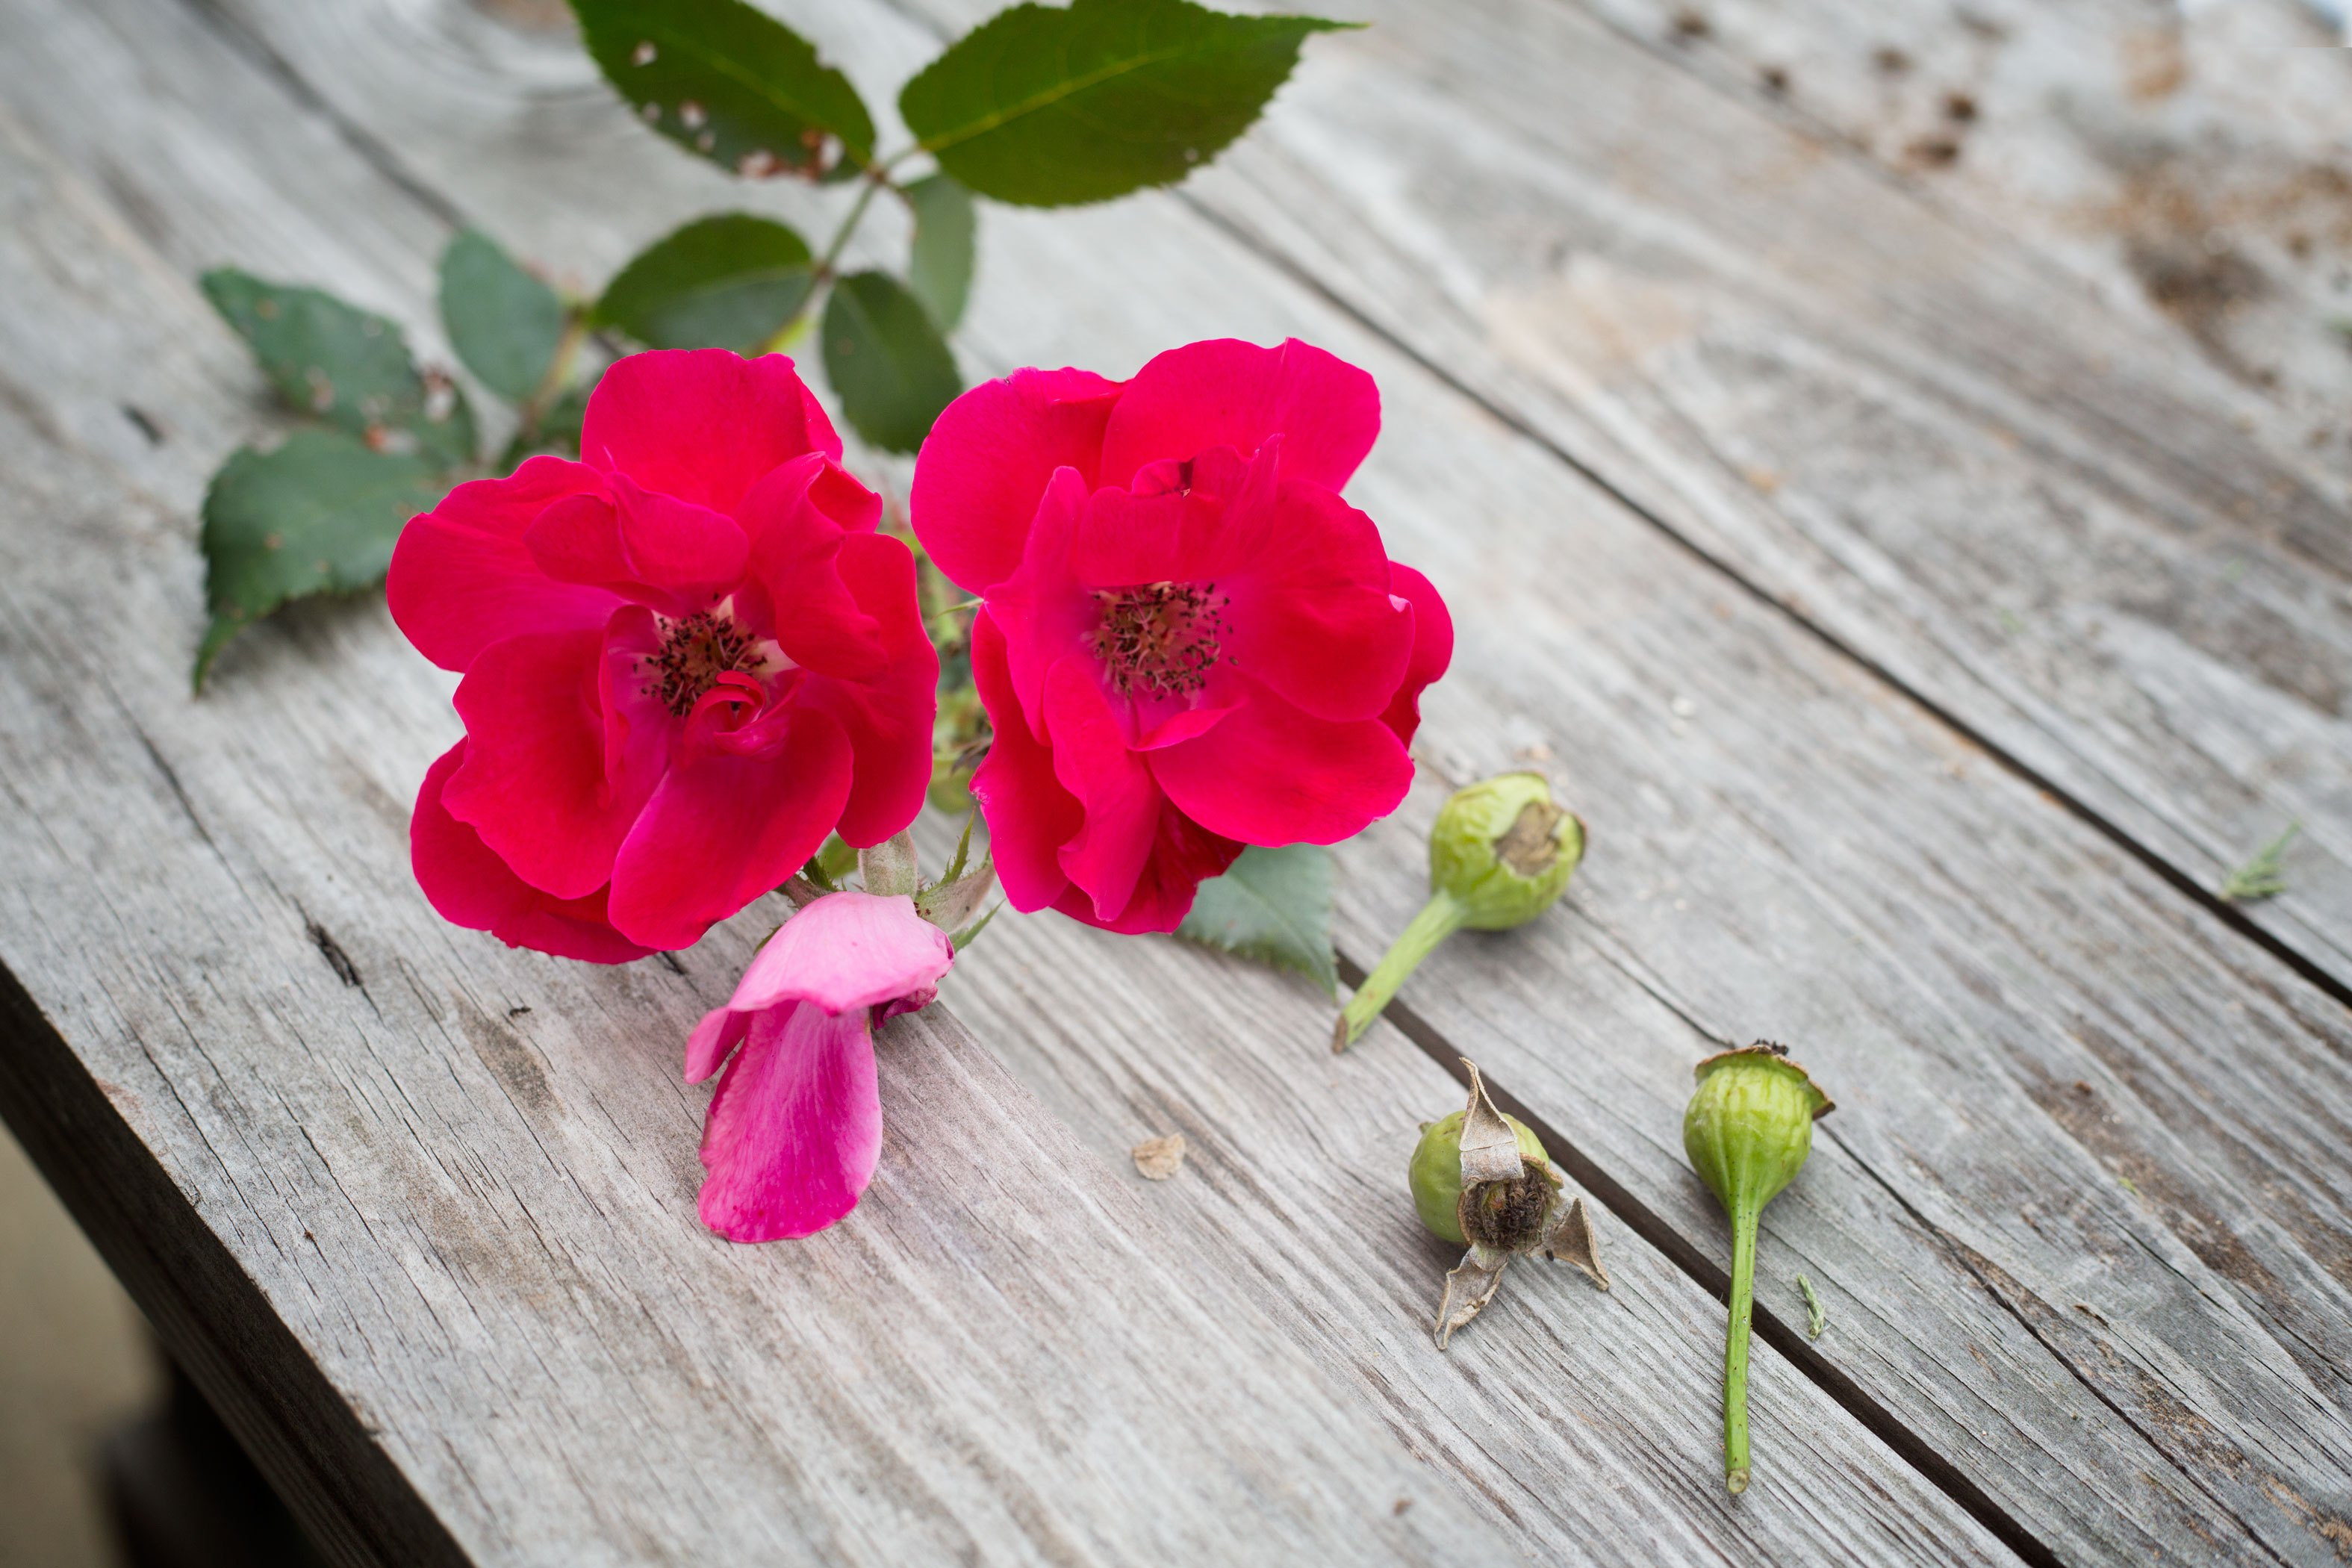 How to plant rose seeds with pictures ehow - When to plant roses ...